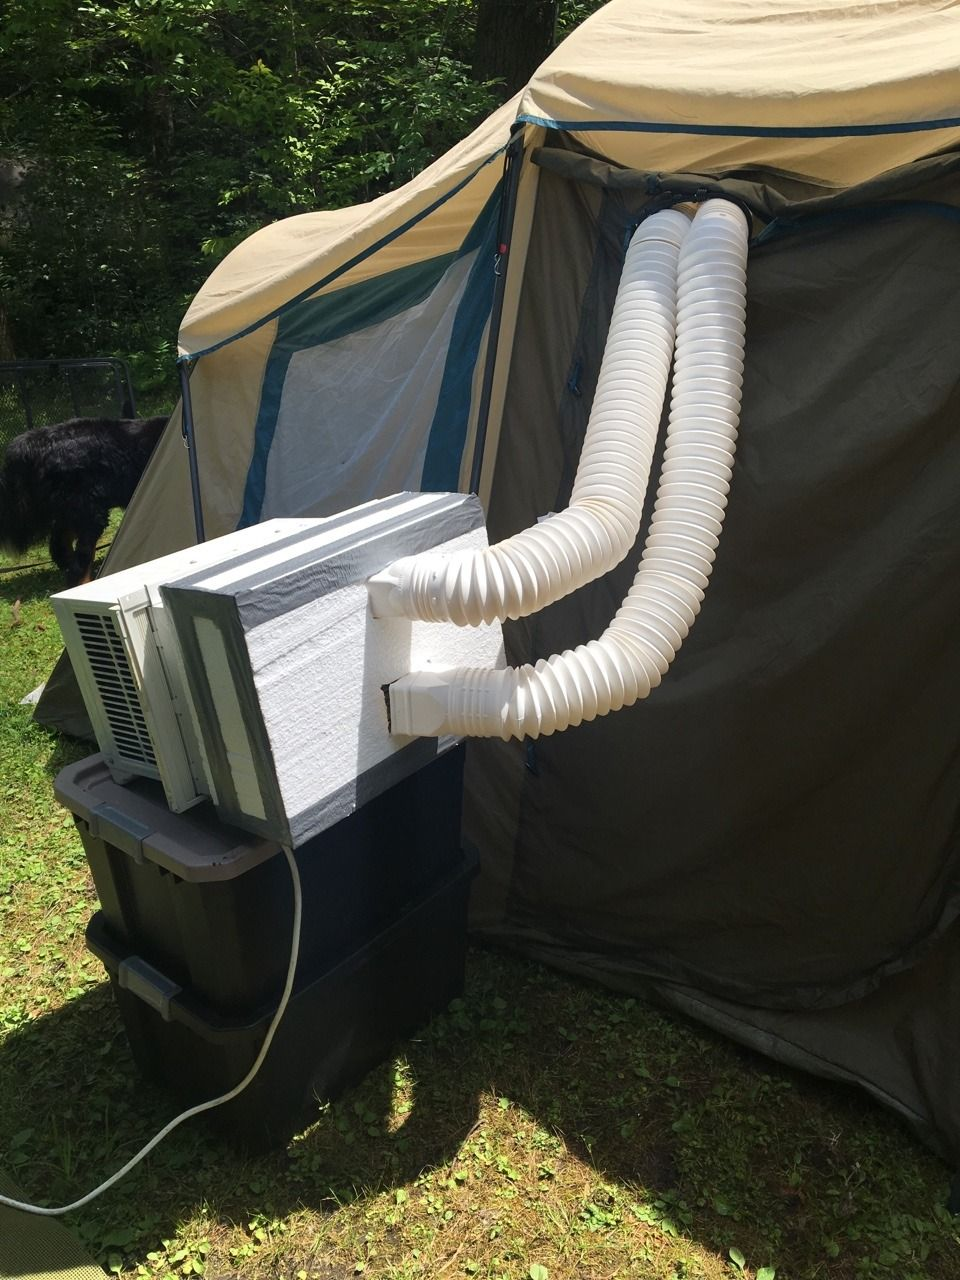 I used a window air conditioner in our tent while camping